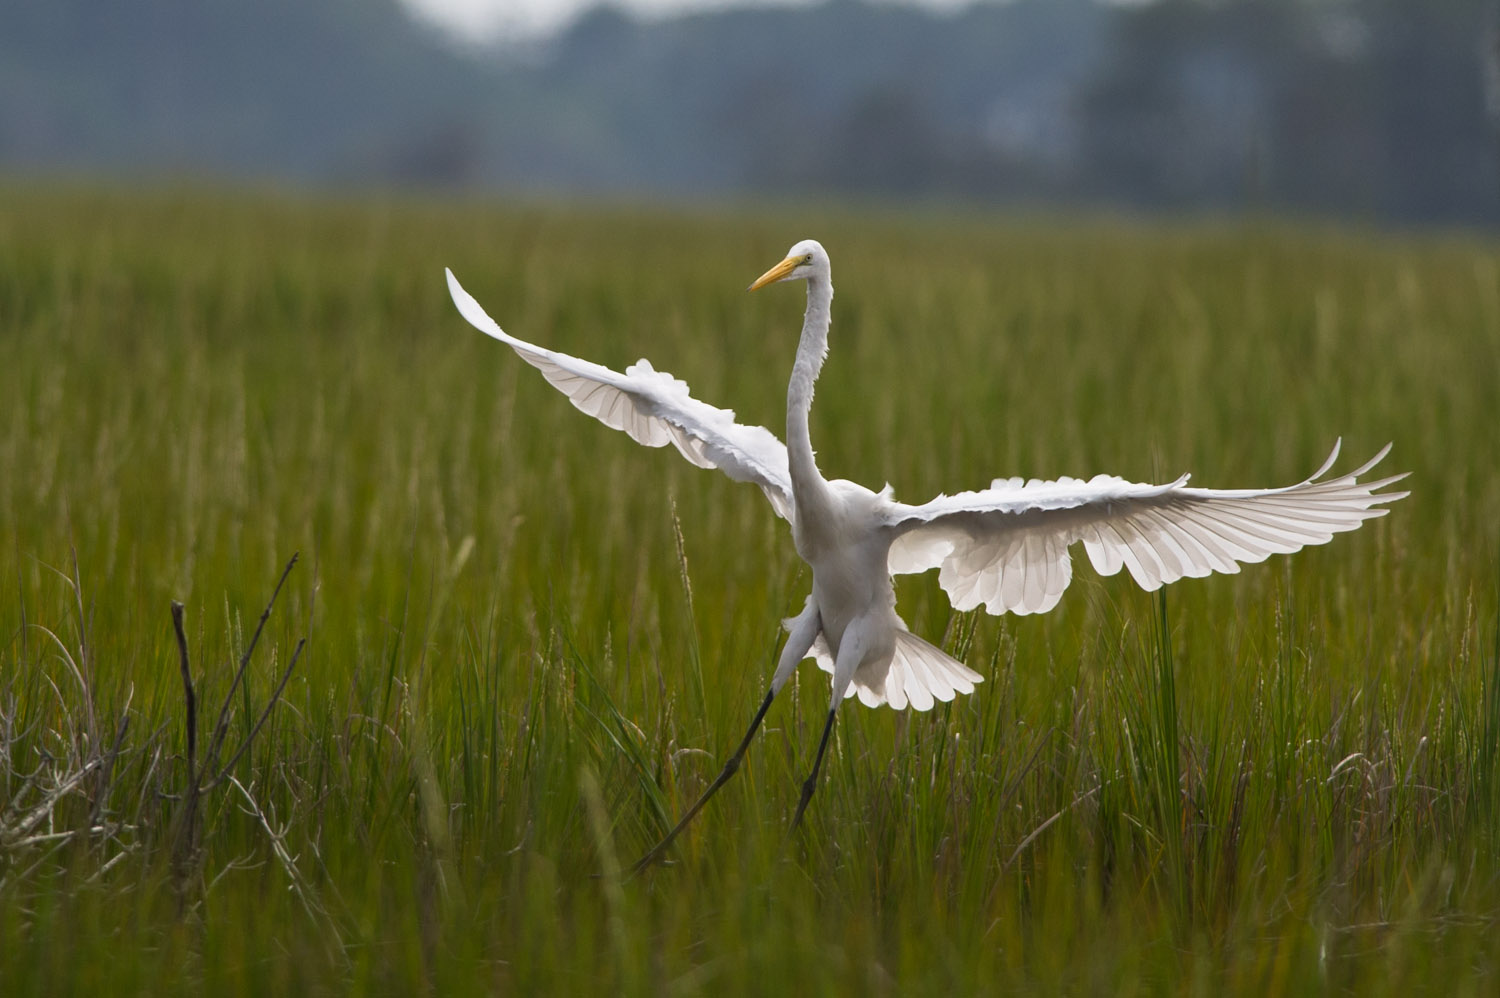 A graceful Great Egret comes in for a landing as I sit on the dock of the rental house.